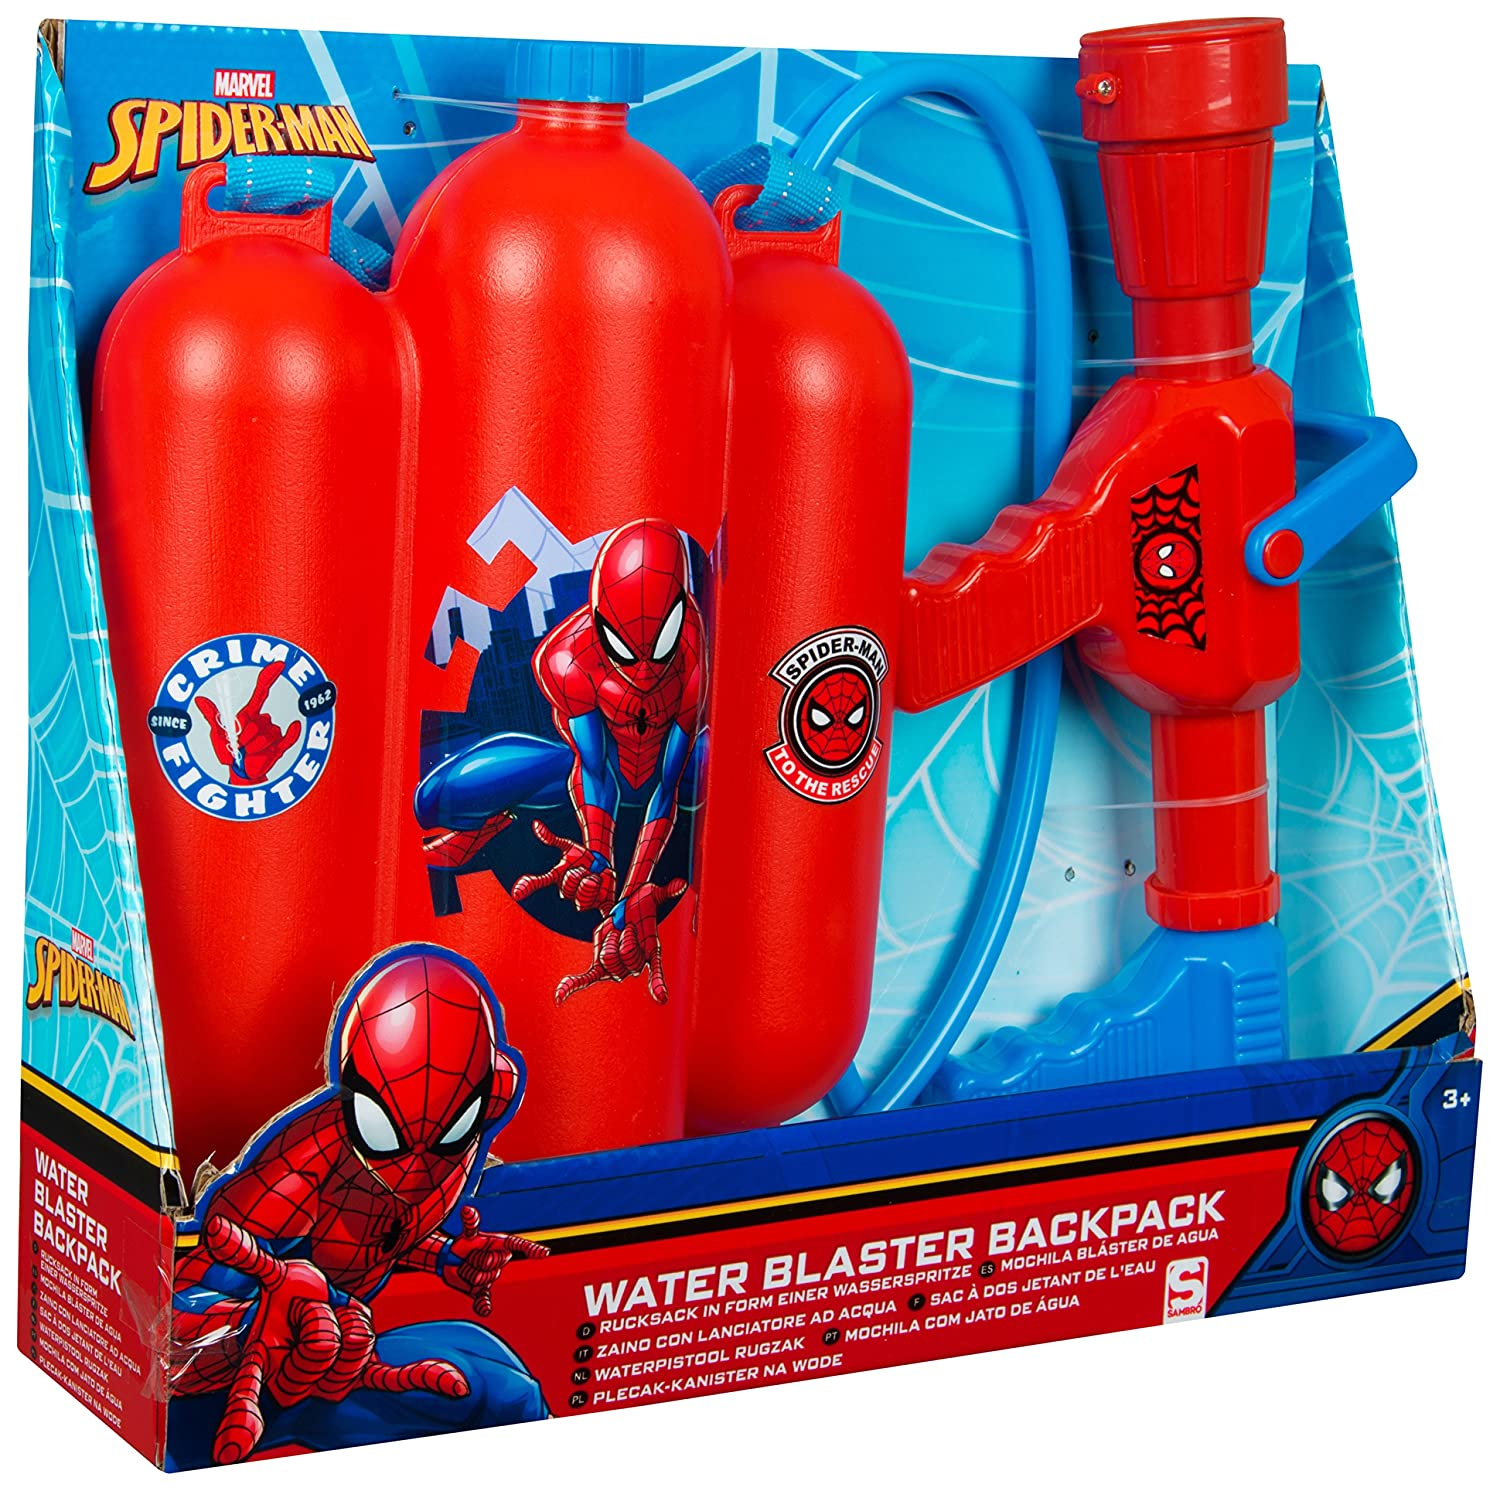 Spiderman spe-3121  acqua Blaster zaino, multicolore Sambro